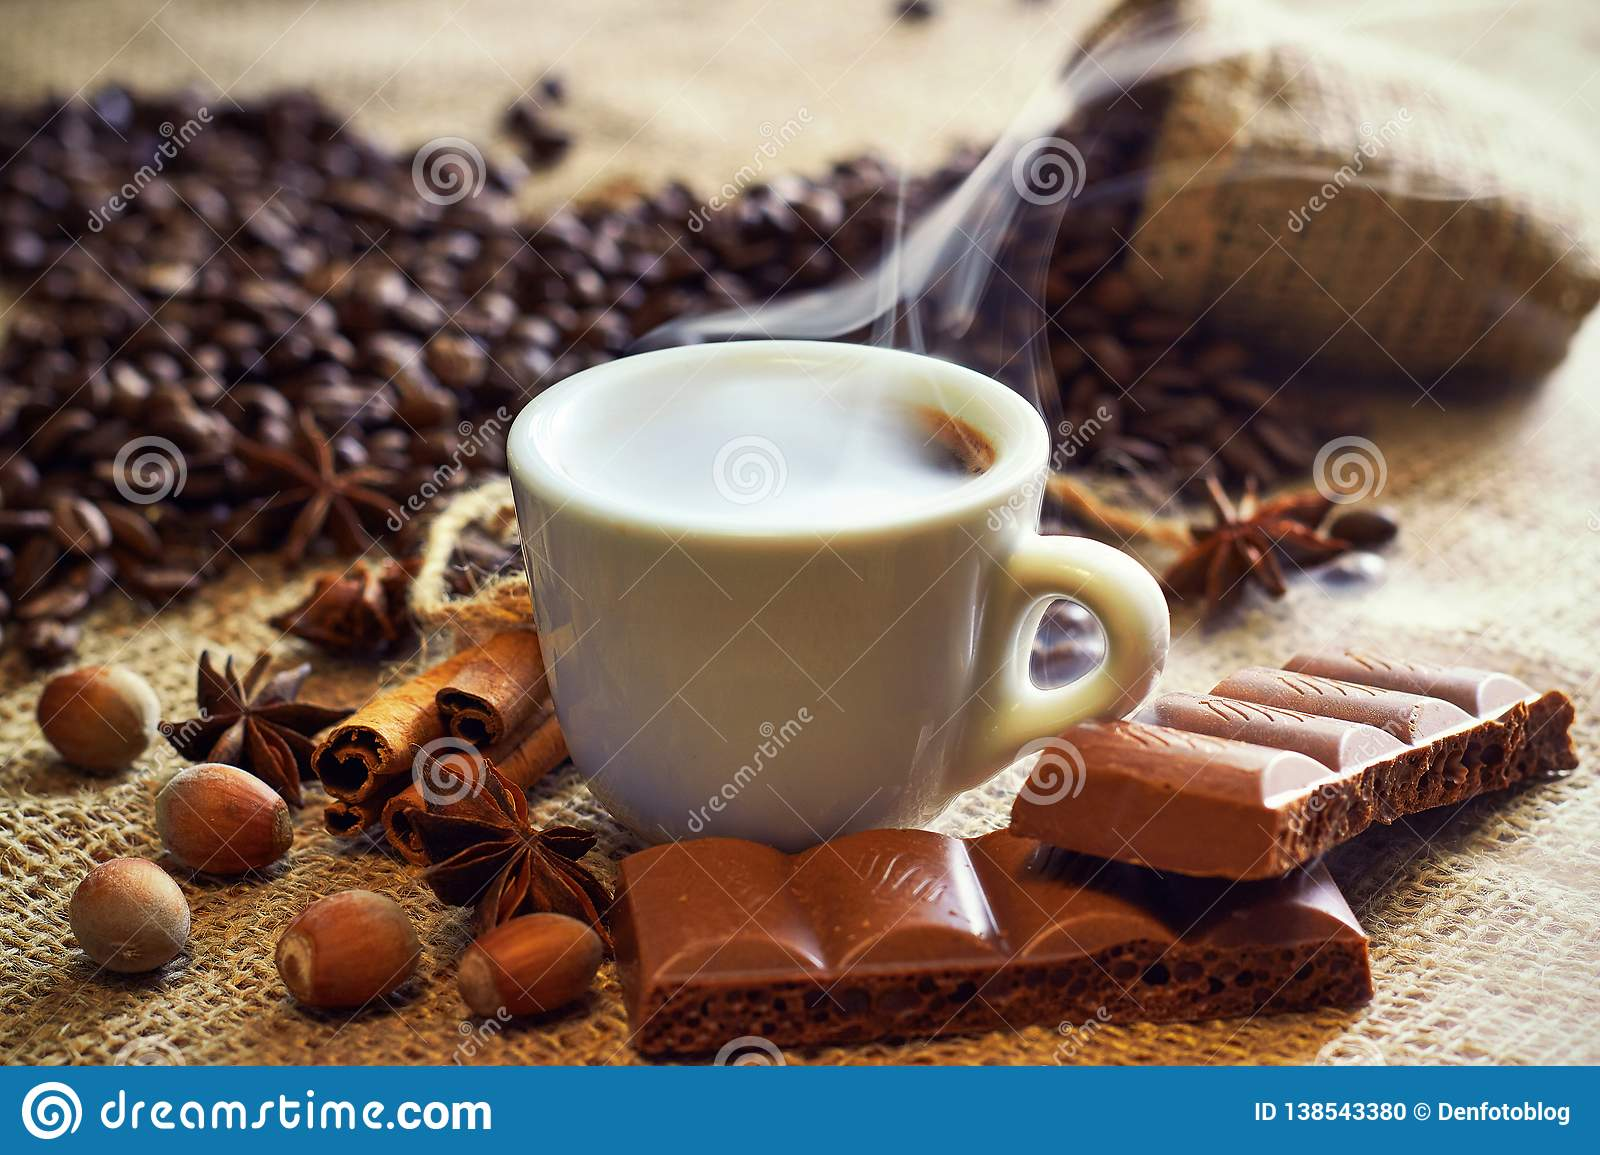 A cup of coffee on a plate with cinnamon and anise and chocolate, grains of coffee on sackcloth